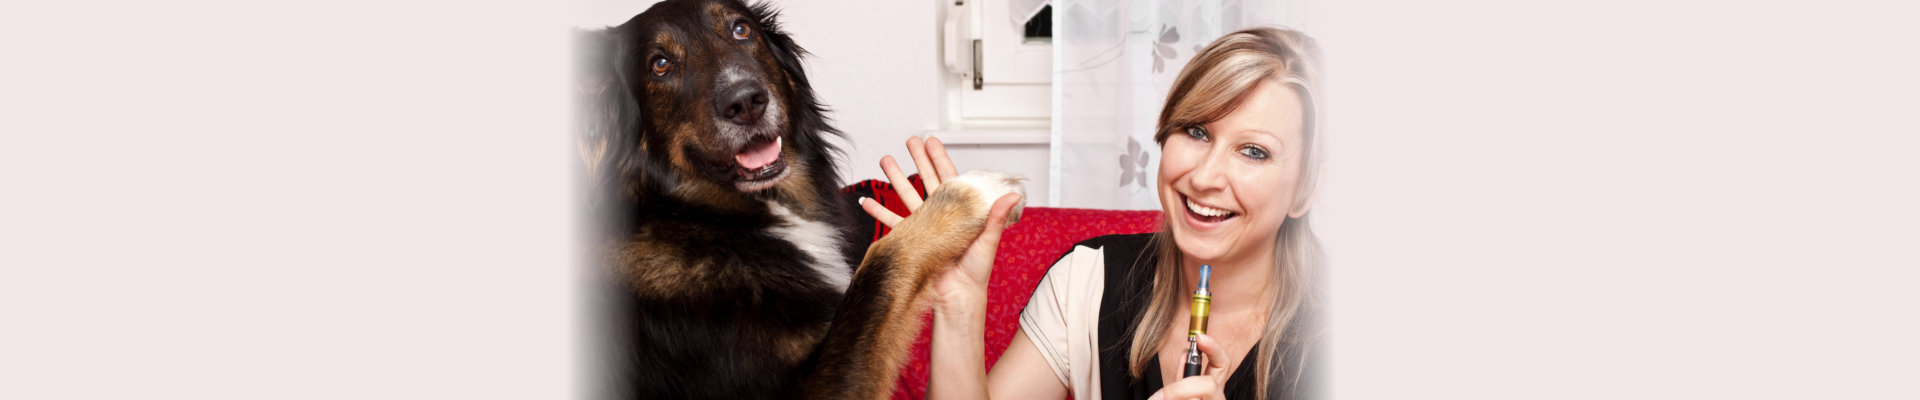 adult woman shaking hands with a dog